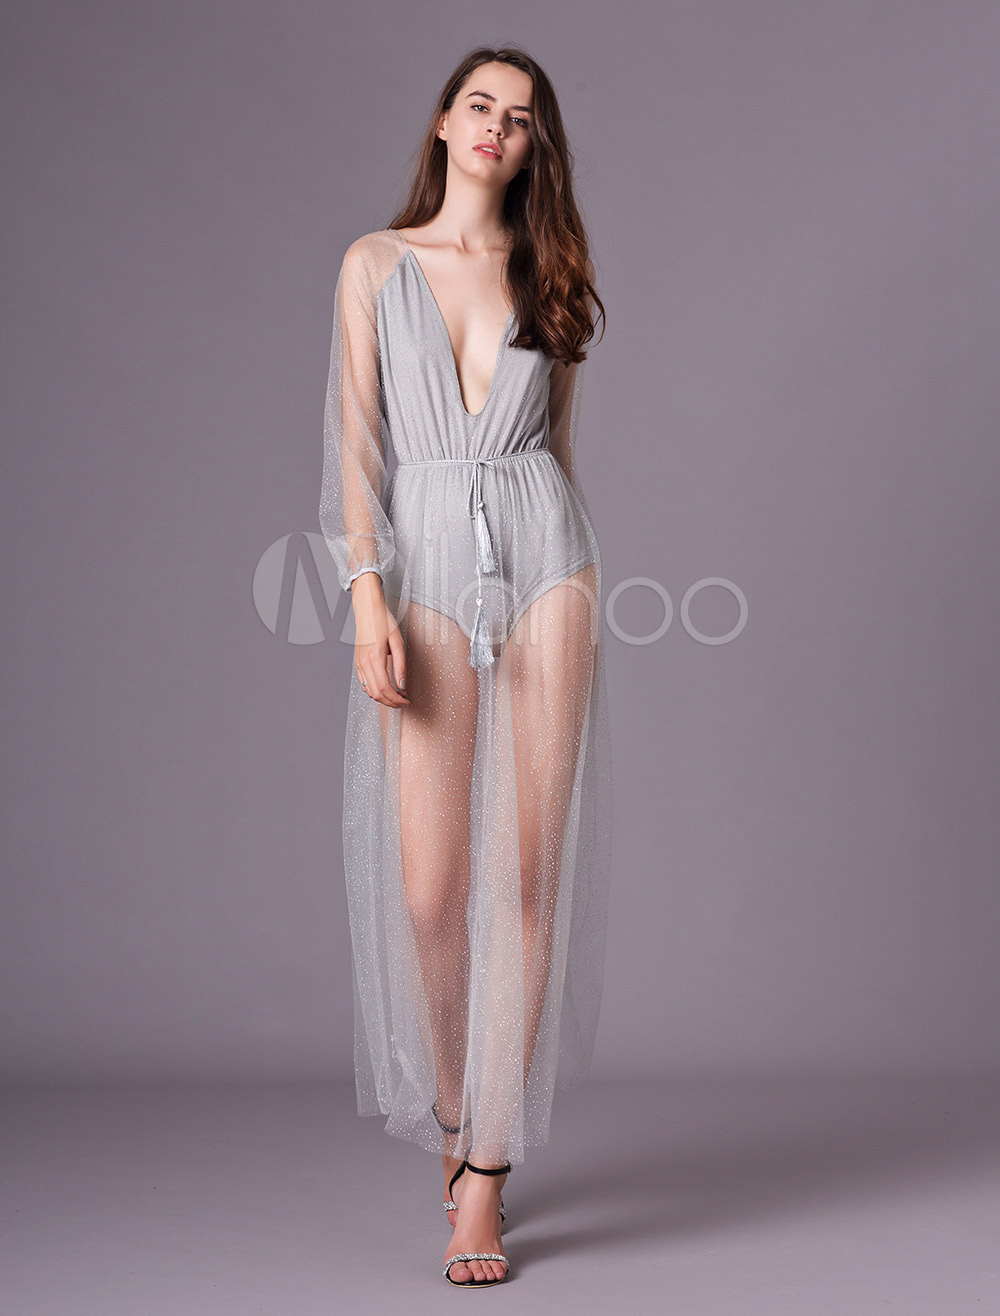 Buy Glitter Maxi Dress Silver Sequin Party Dress Tulle Sheer Plunging Backless Long Sleeve Women Sexy Dress for $38.39 in Milanoo store